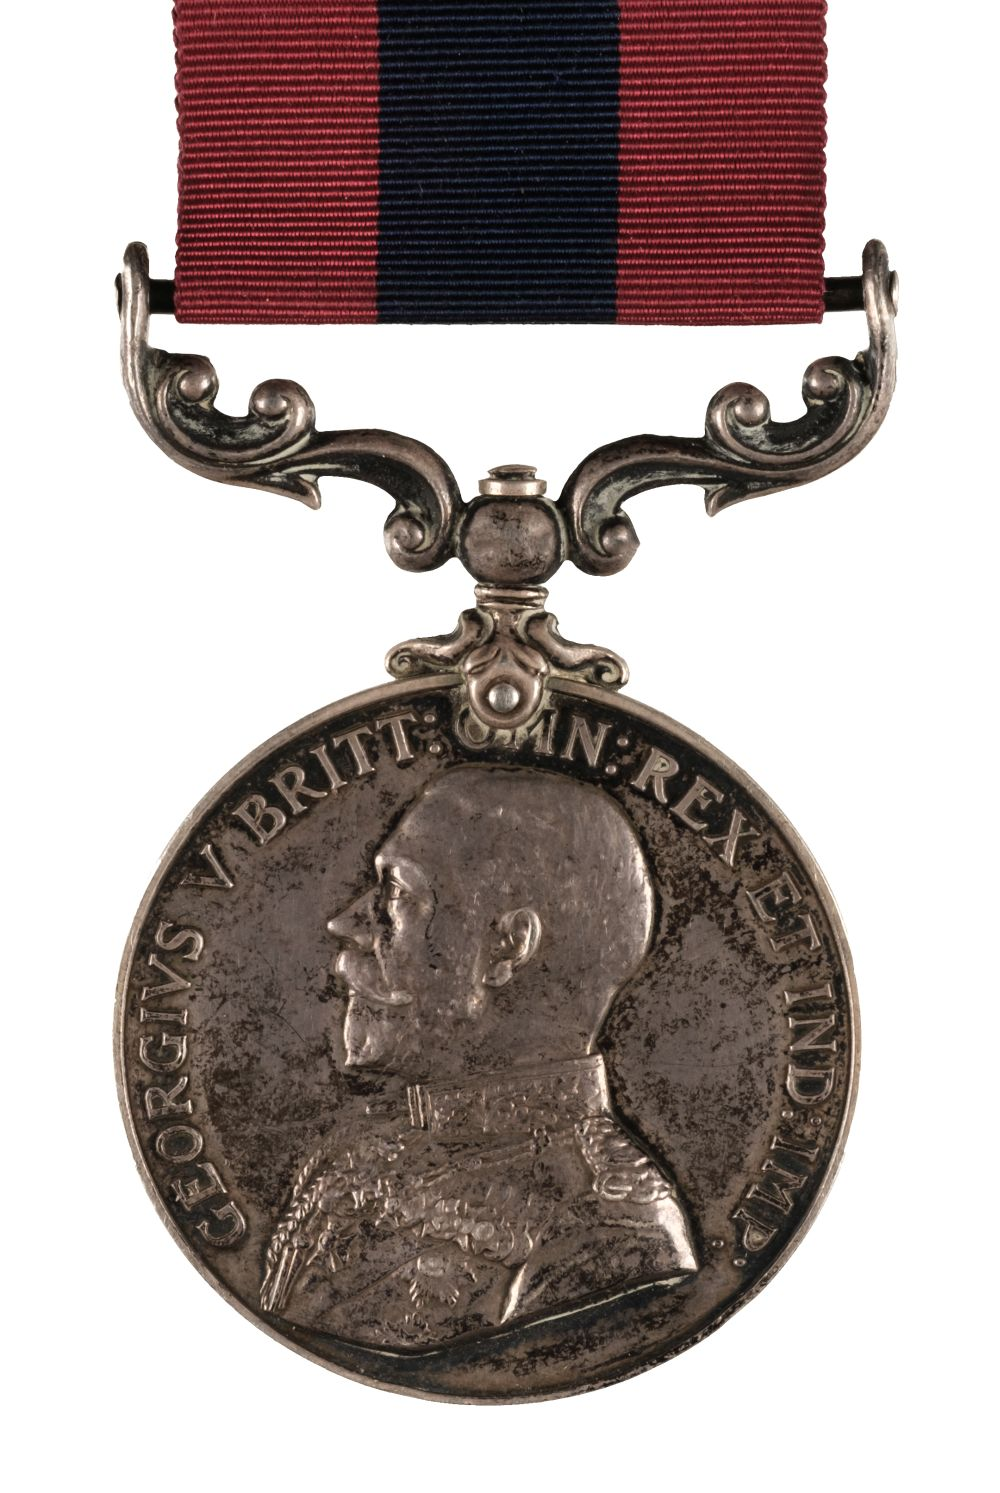 * Distinguished Conduct Medal - Bombardier G. Butterfield, Royal Garrison Artillery